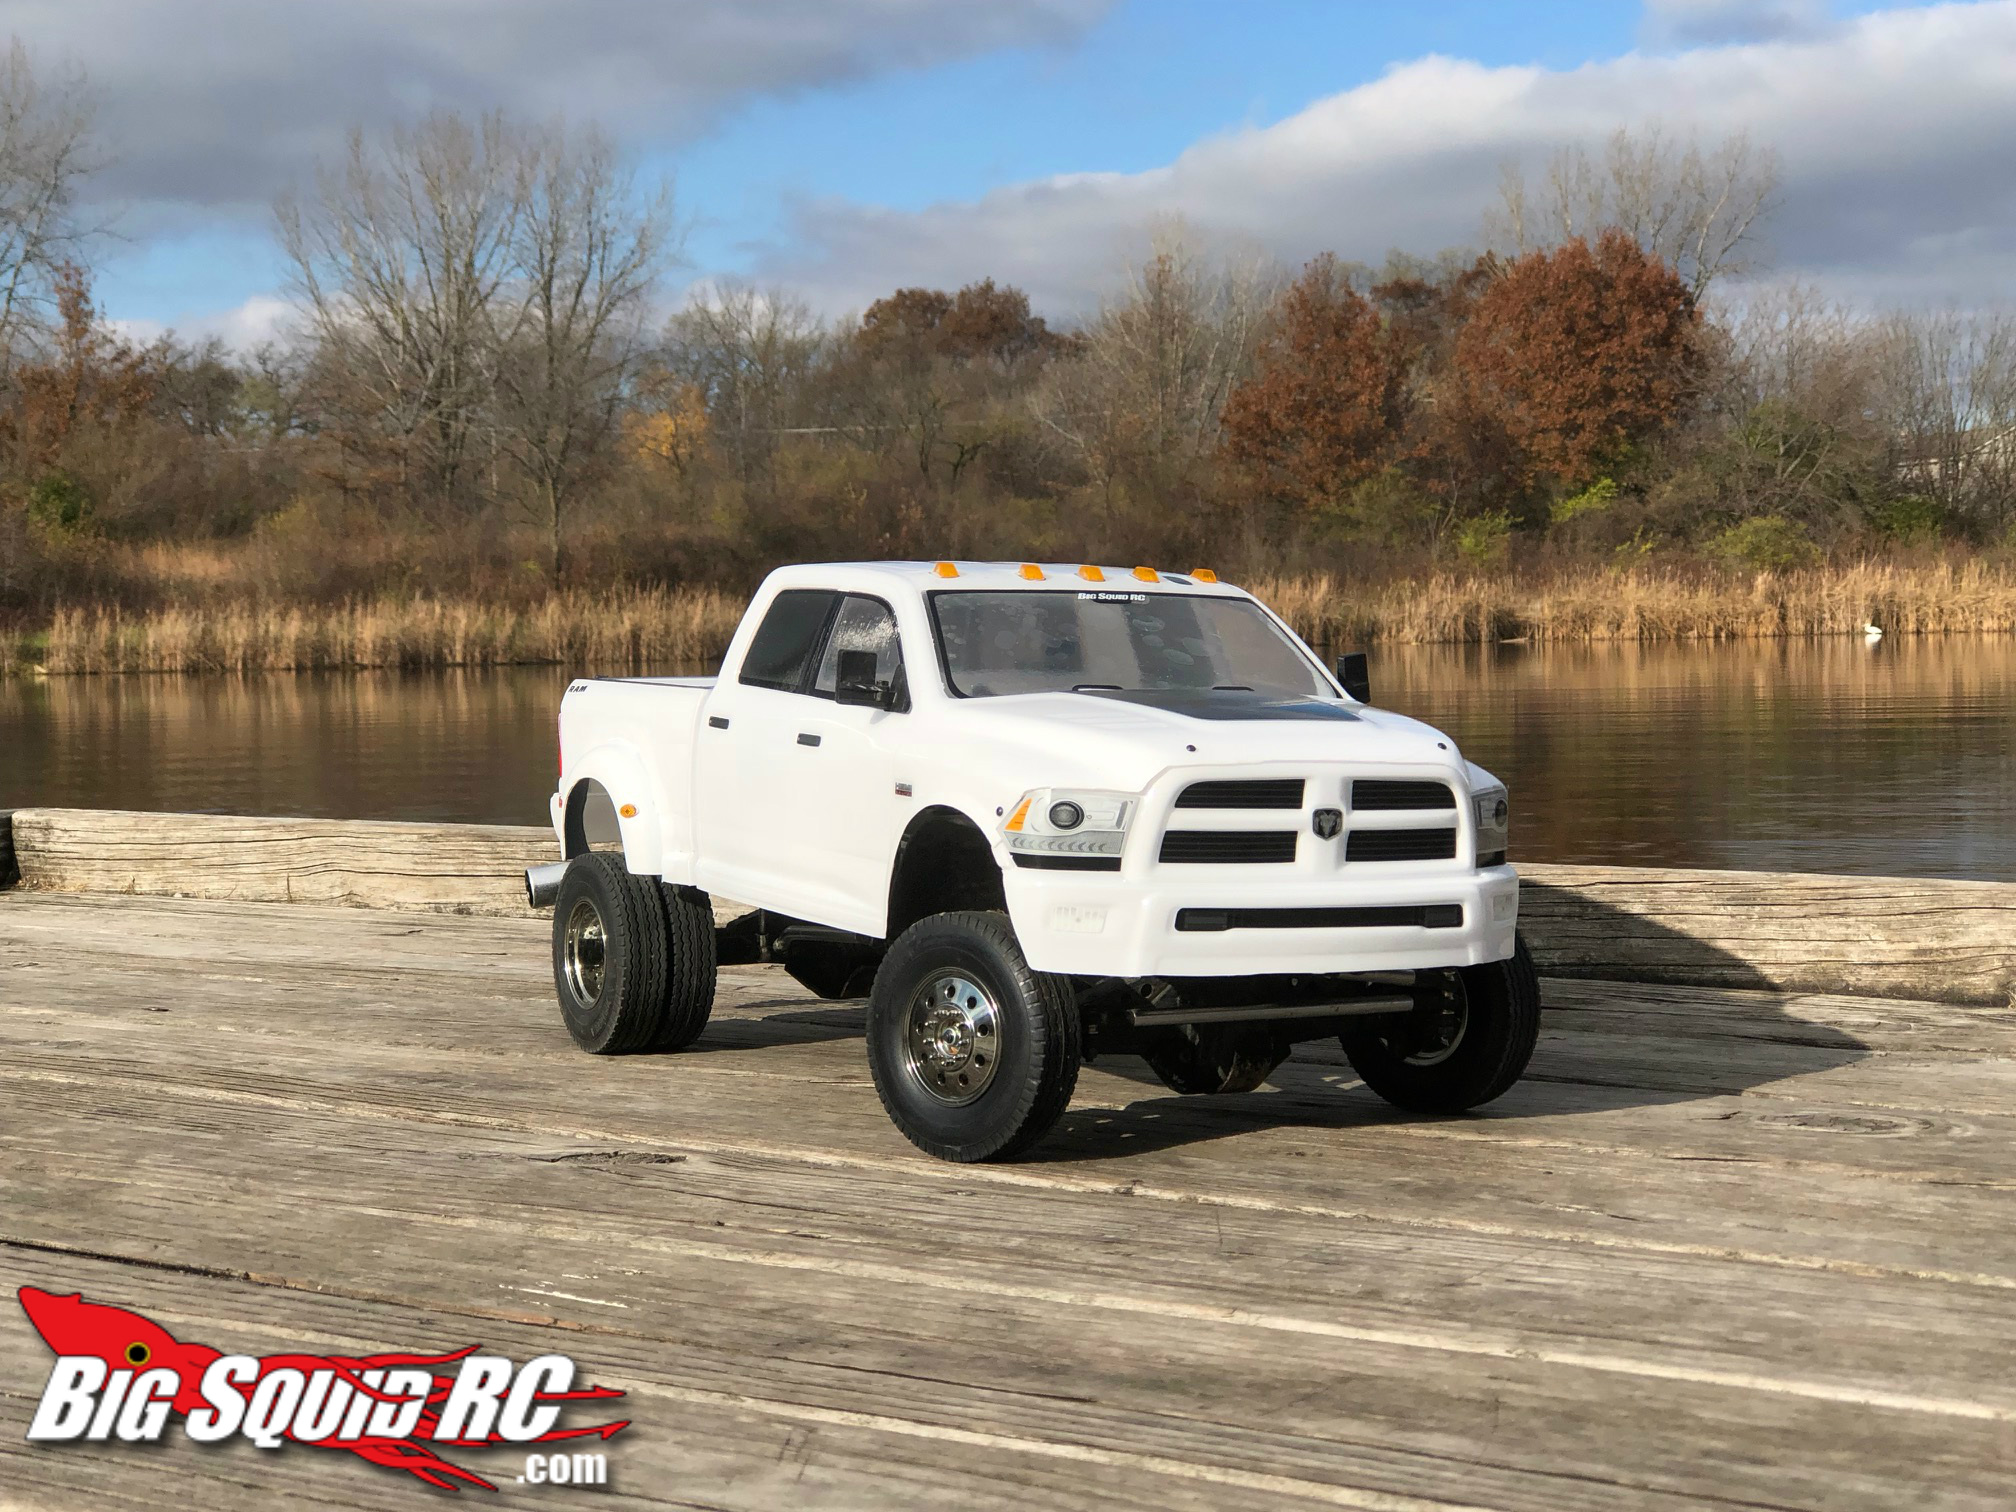 Everybody S Scalin Redcat Everest Gen 7 Dually Squid Rc Car And Truck News Reviews Videoore